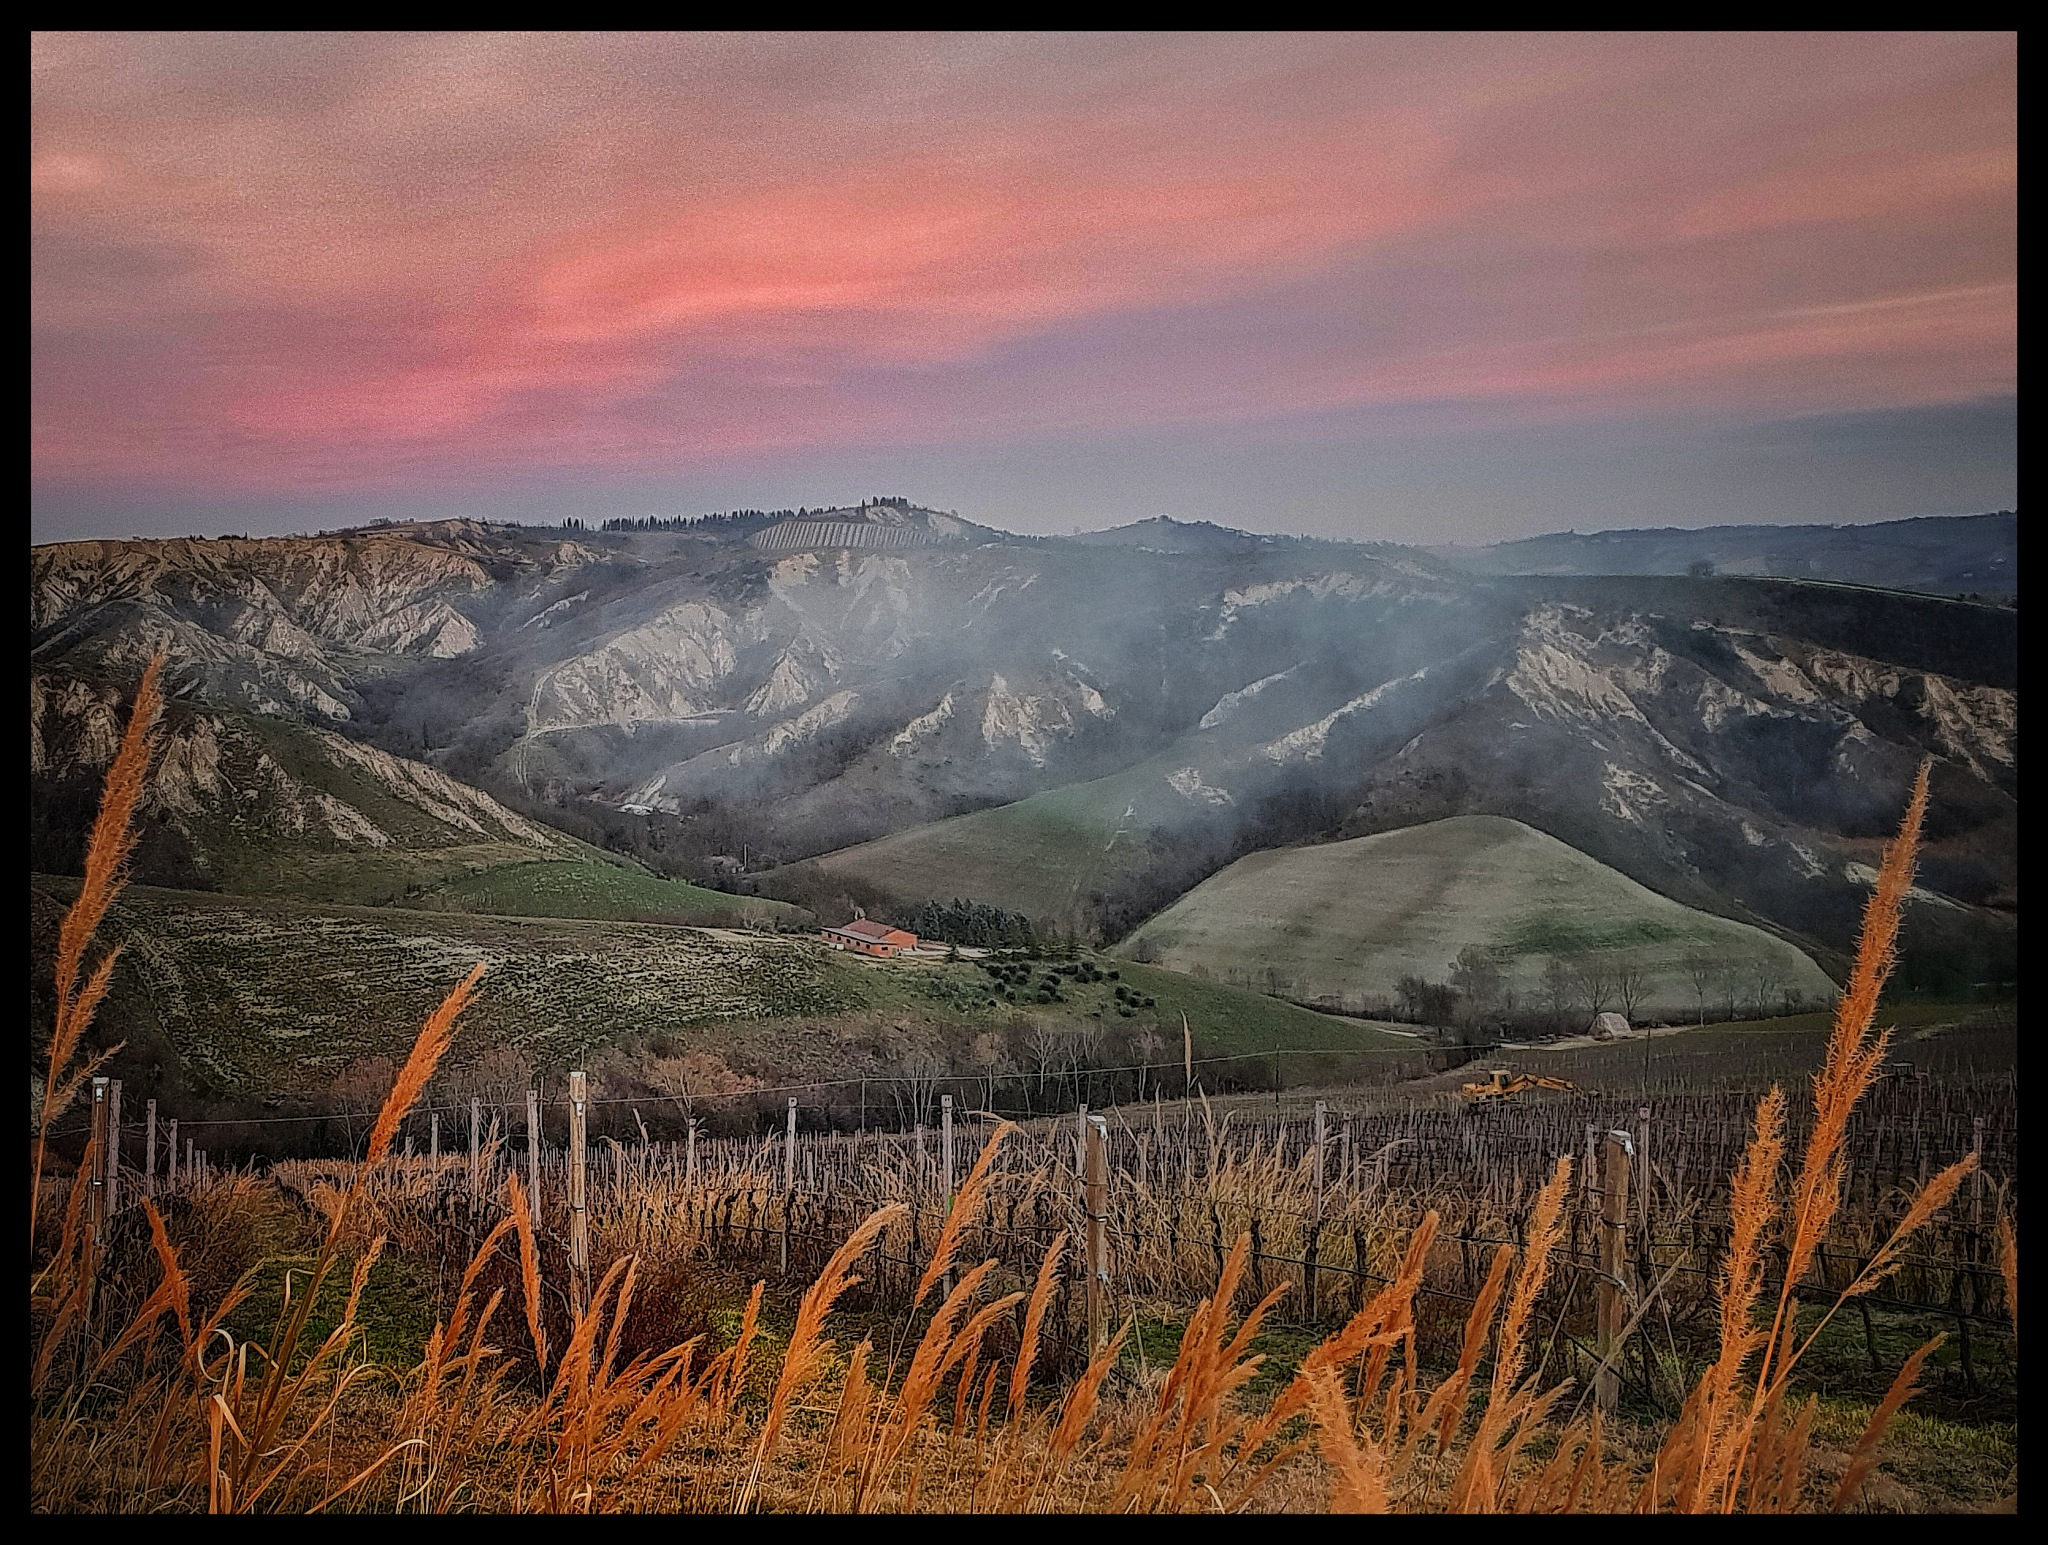 A landscape in the Appennines  by Claudia Farolfi